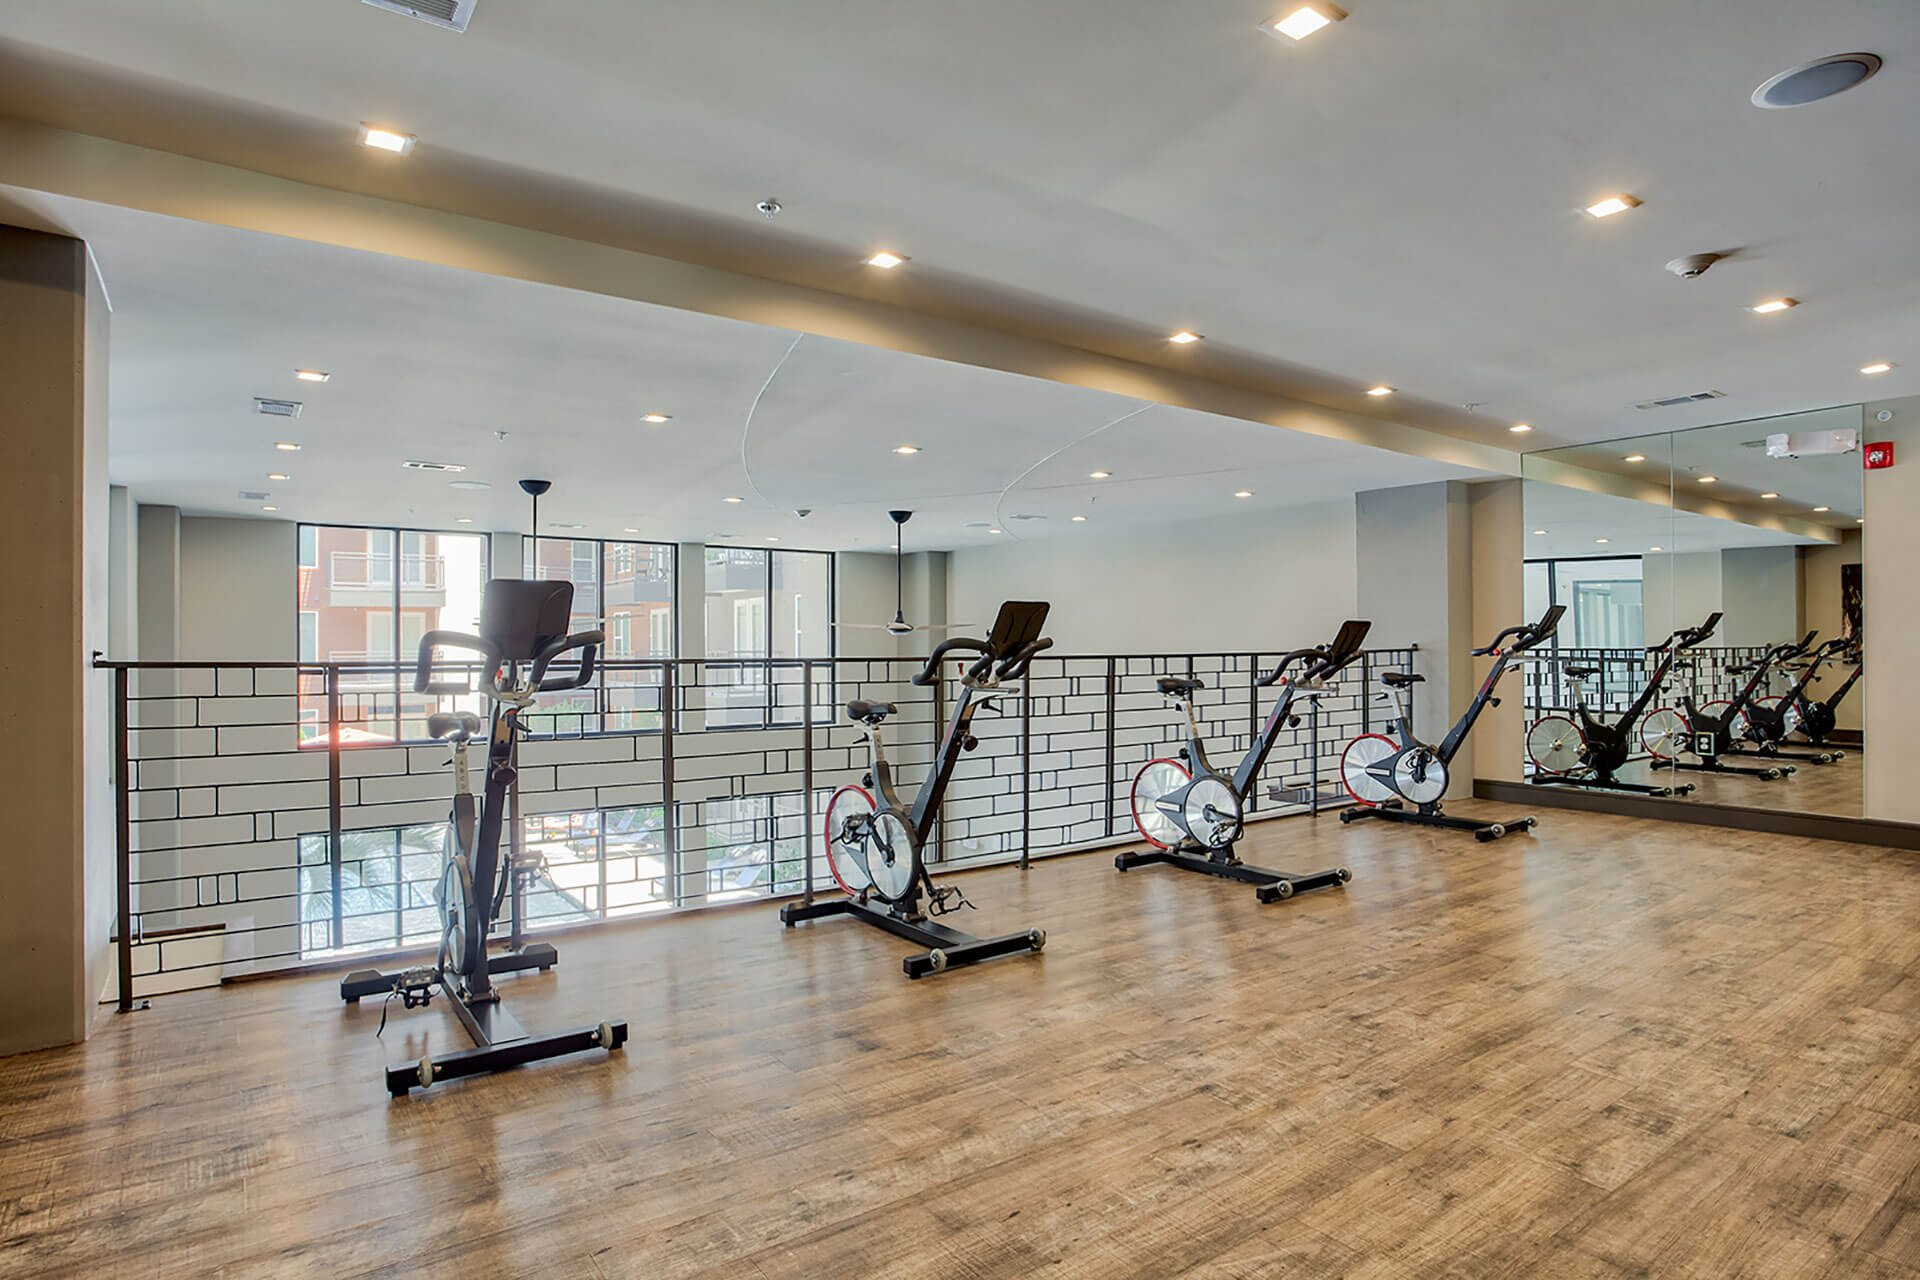 Spin Bikes at Windsor by the Galleria, 13290 Noel Rd, Dallas